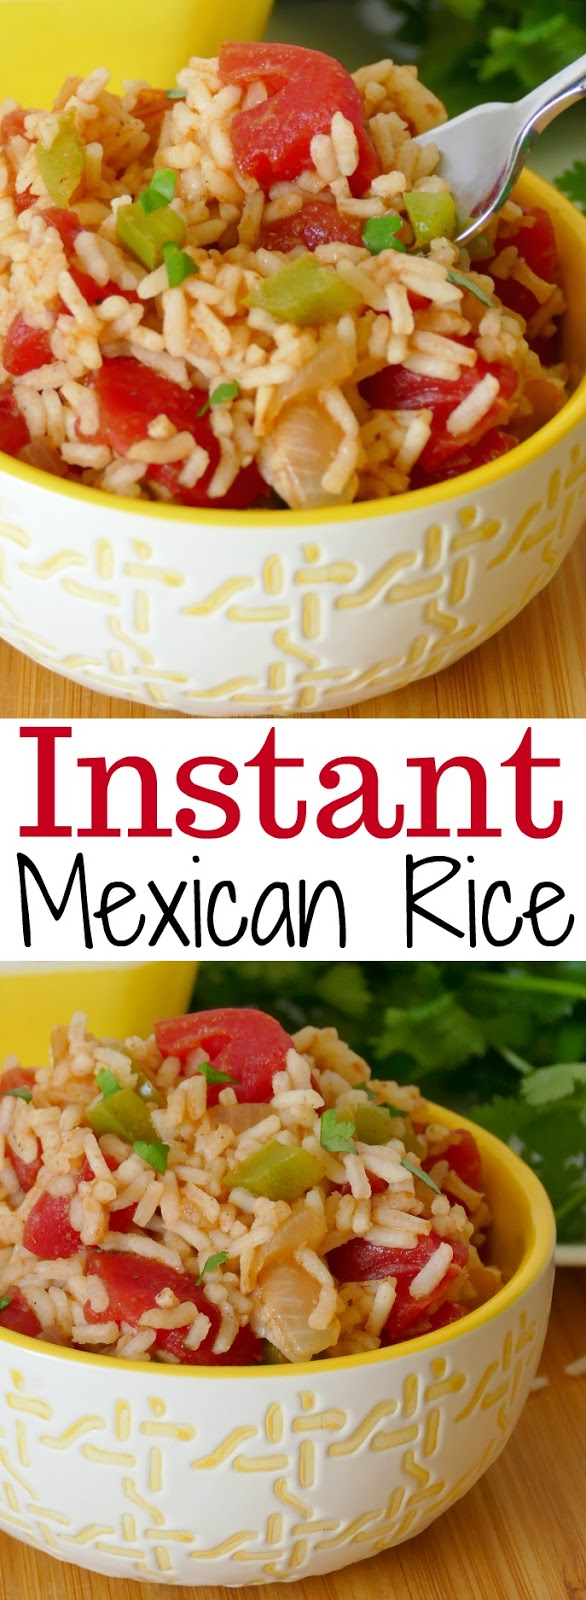 This quick and easy side dish recipe is great with tacos, enchiladas or burritos! Ready in less than 20 minutes and budget friendly!